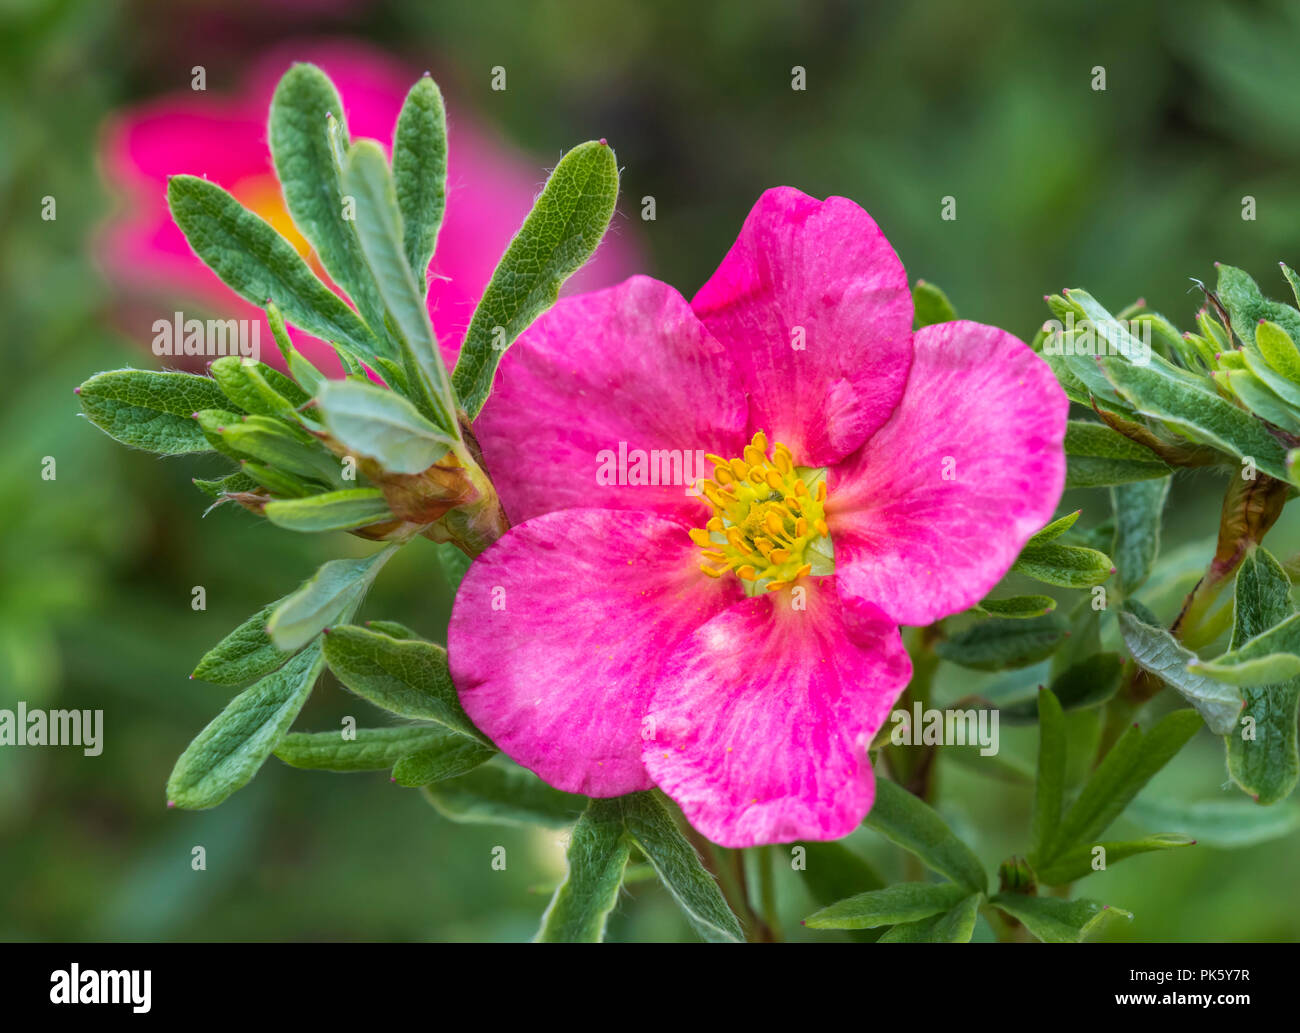 Single flower of the Potentilla Fruticosa 'Bellissima' (common name: Cinquefoil), a deep pink hardy shrub, in early Autumn in West Sussex, England, UK - Stock Image